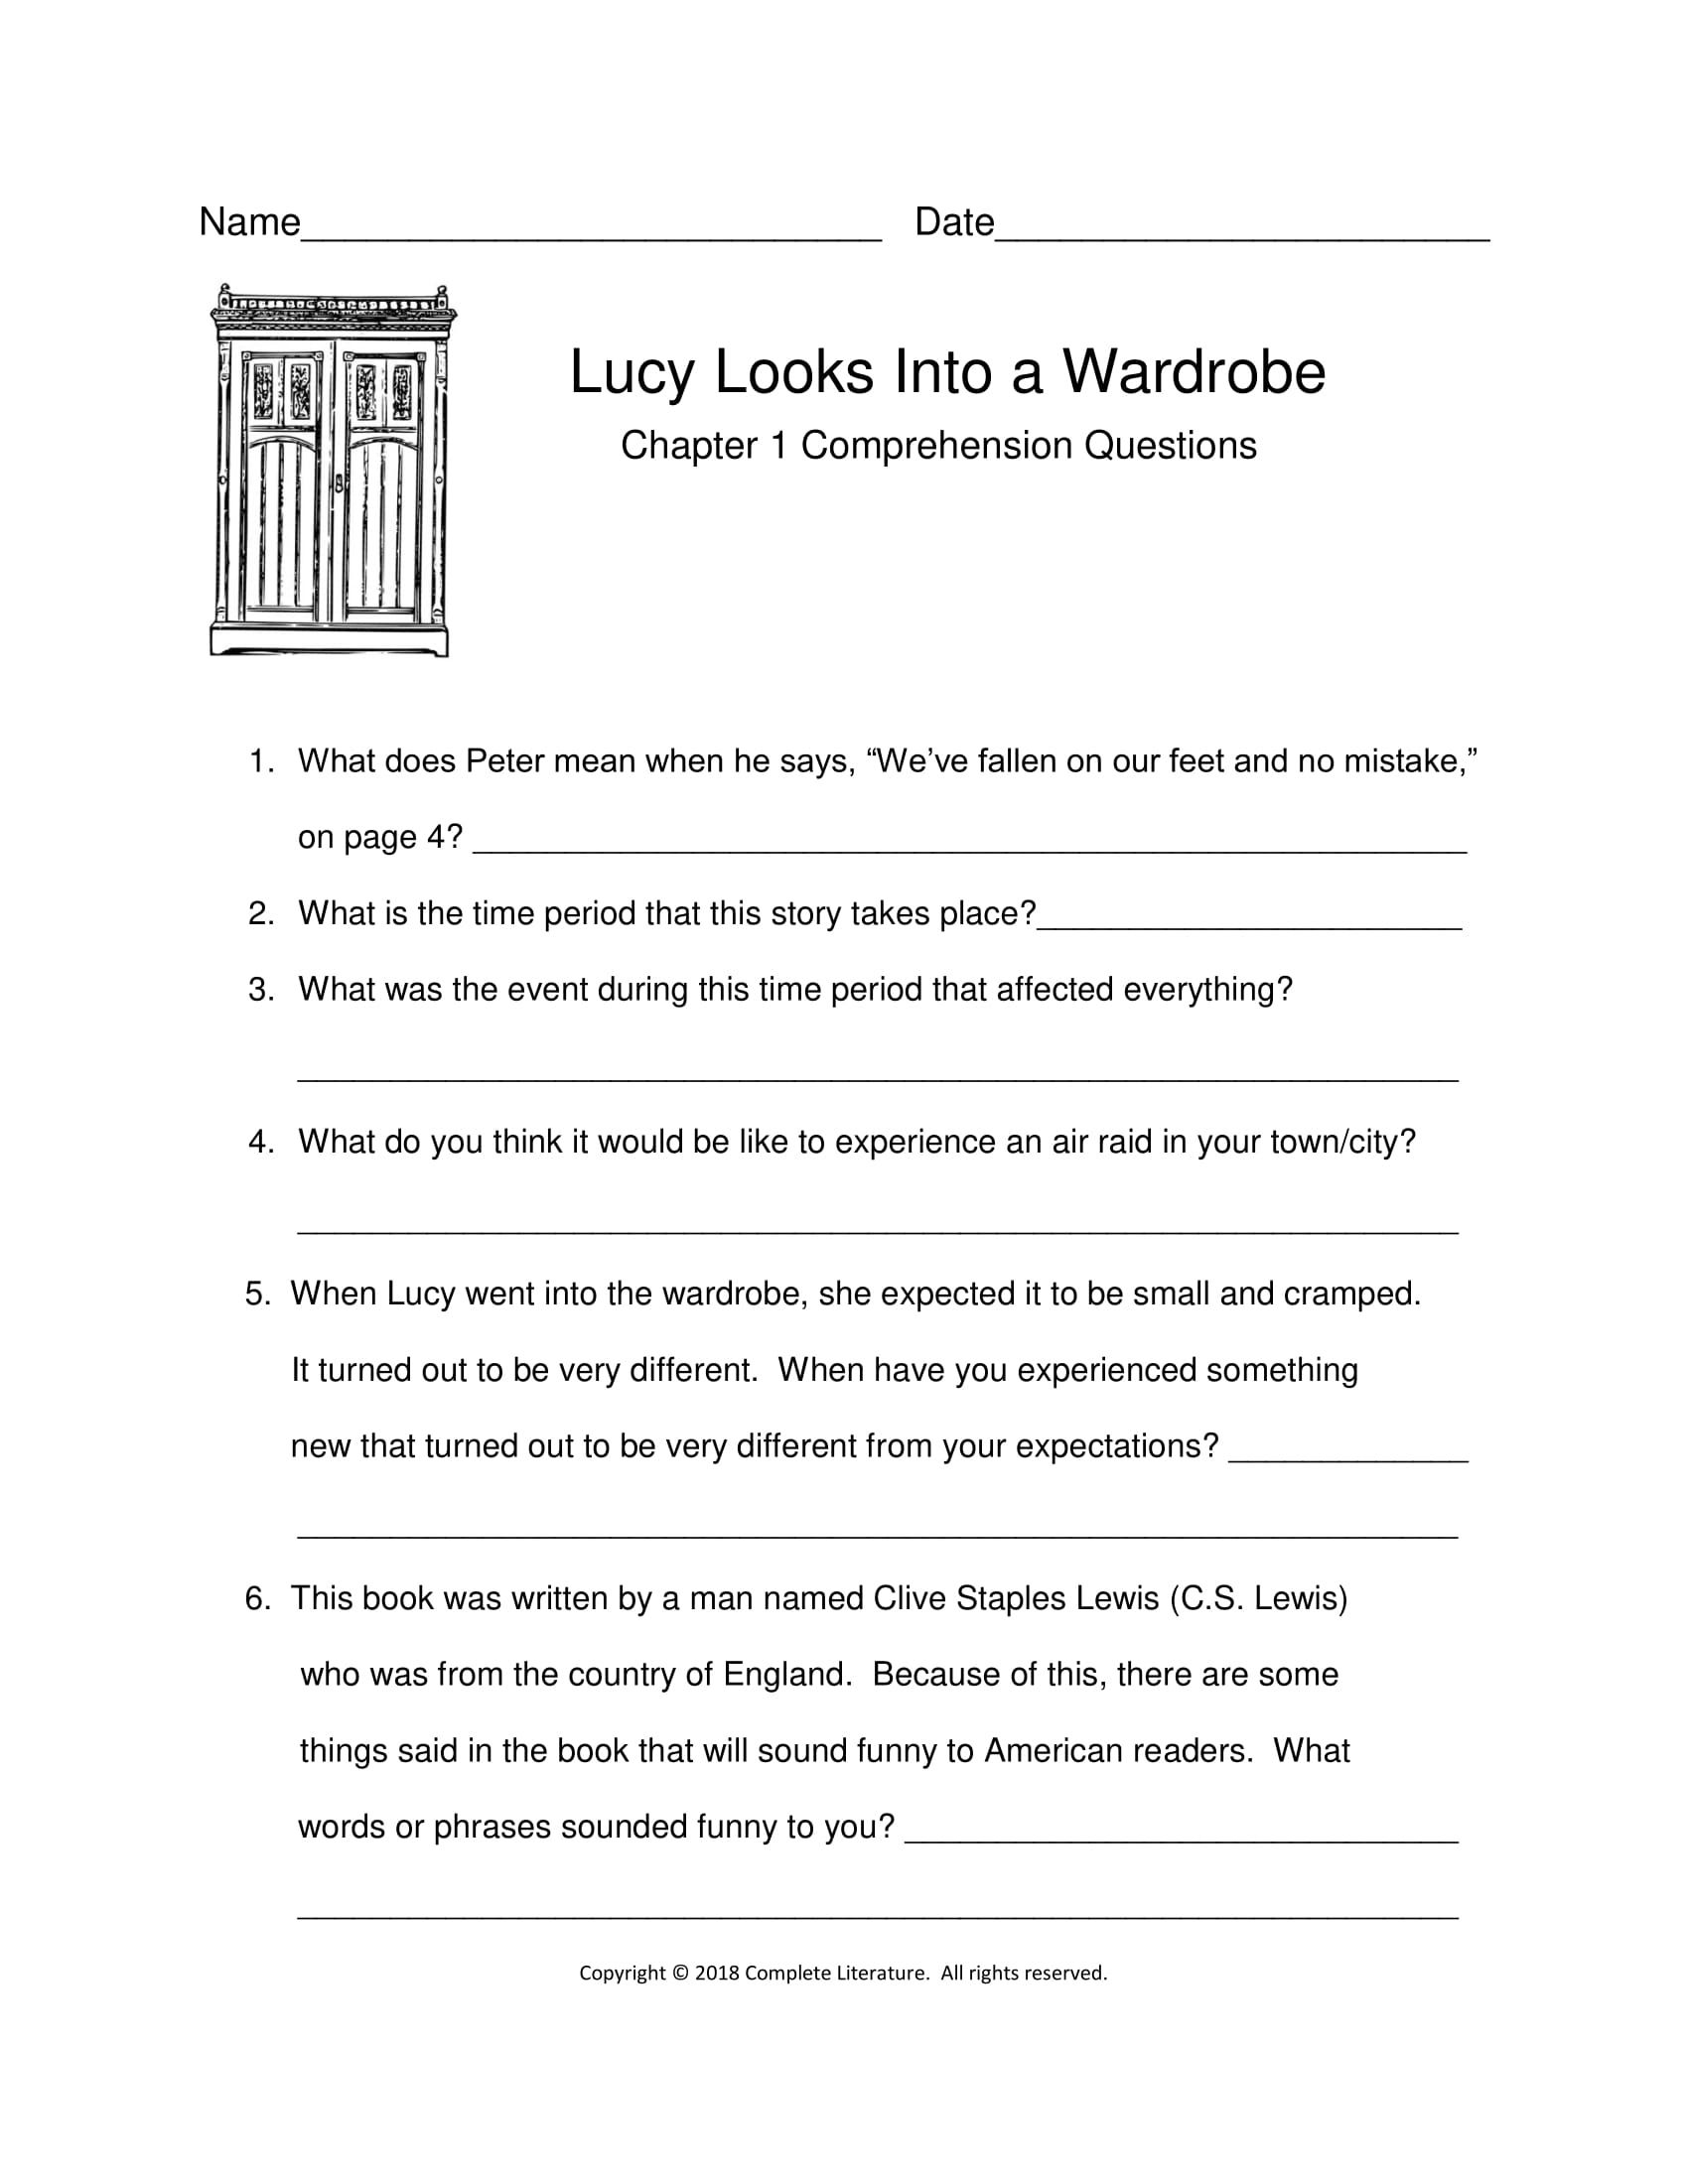 Chapter 1 Comprehension The Lion The Witch And The